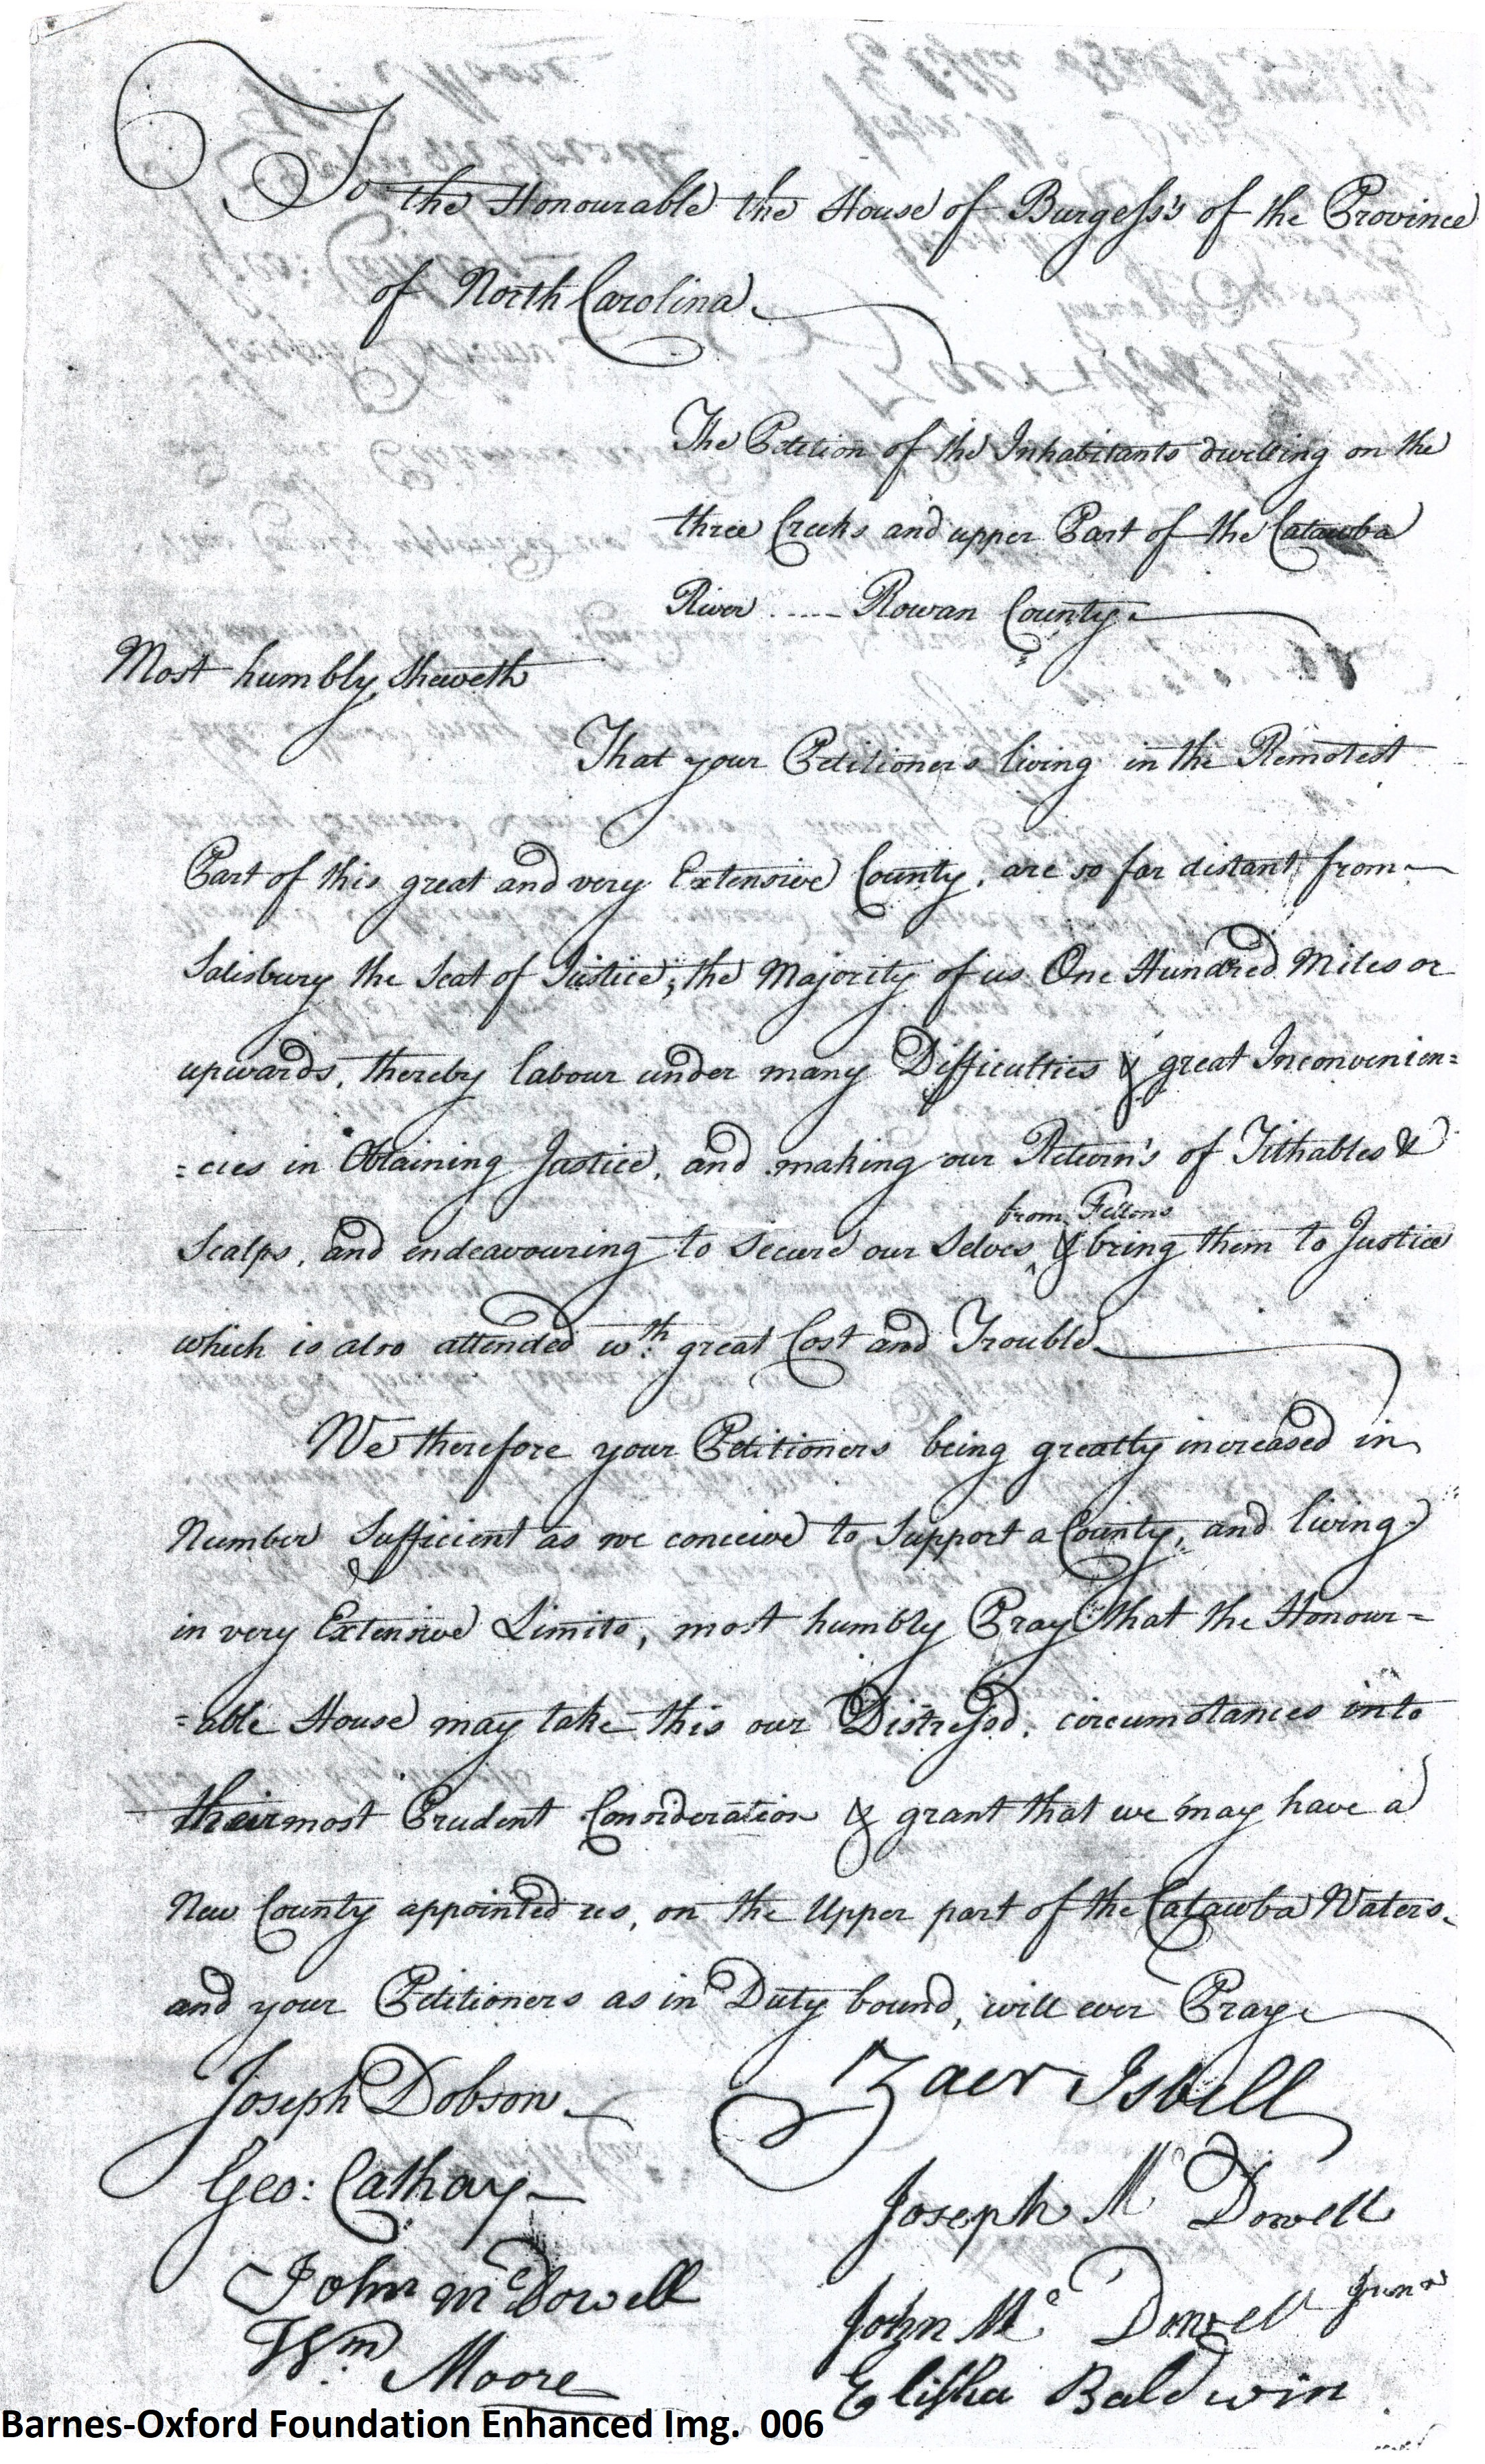 Petition Dividing Rowan creating Burke Co. 27 Nov. 1771 pg 6 of 9